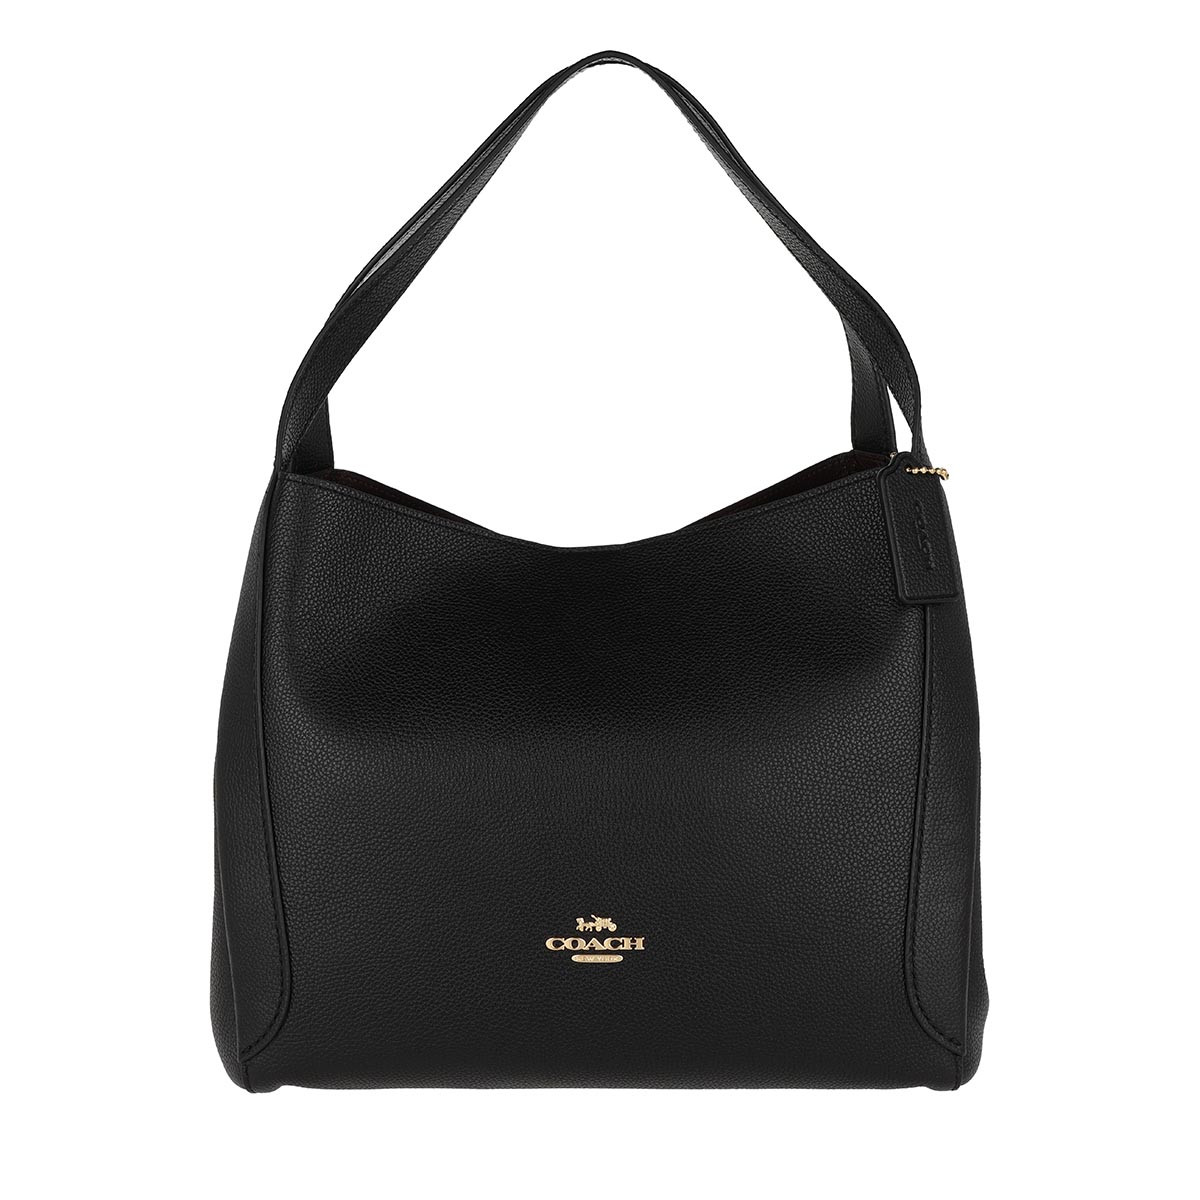 Coach Hobo Bag - Polished Pebble Leather Hadley Hobo Bag Black - in schwarz - für Damen